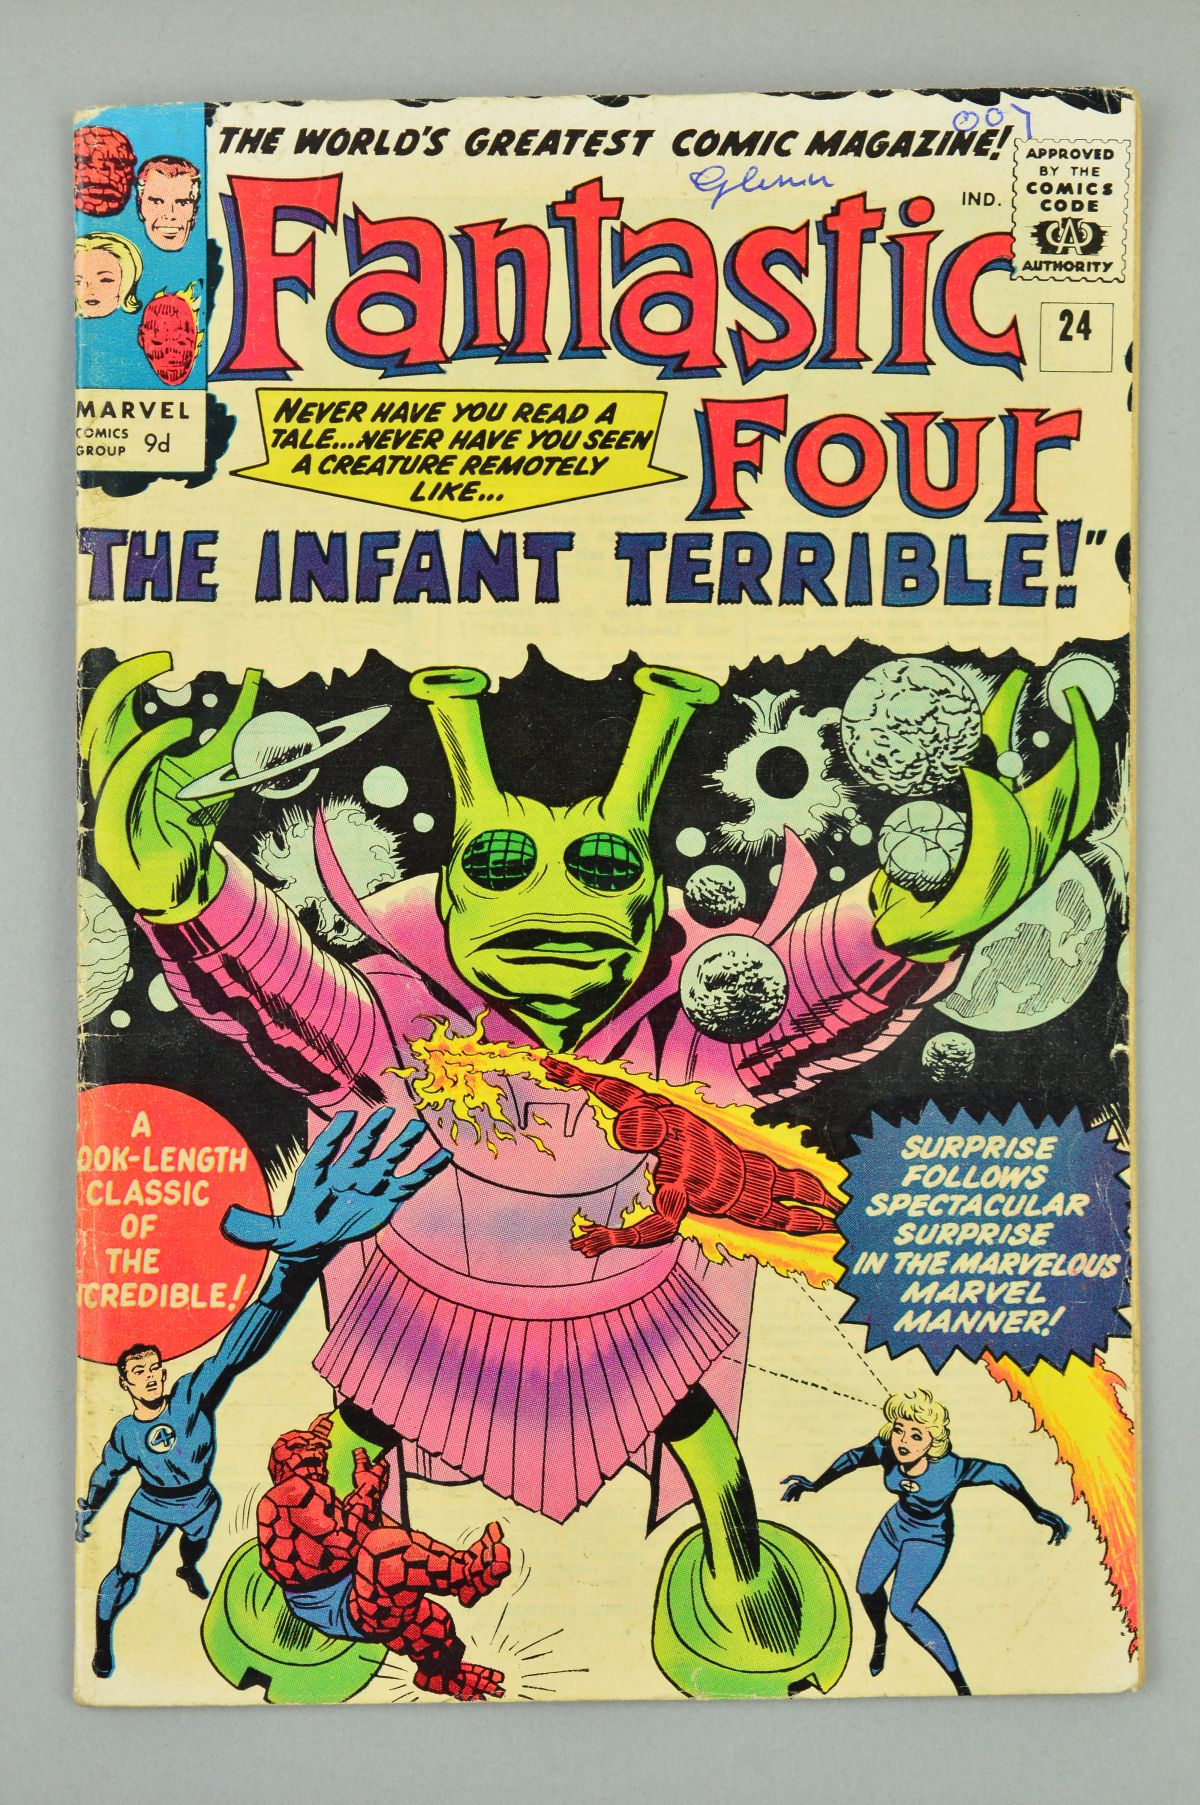 Lot 1824 - Fantastic Four (1961) #24, Published:March 10, 1964, A strange extra-terrestrial being is wreaking